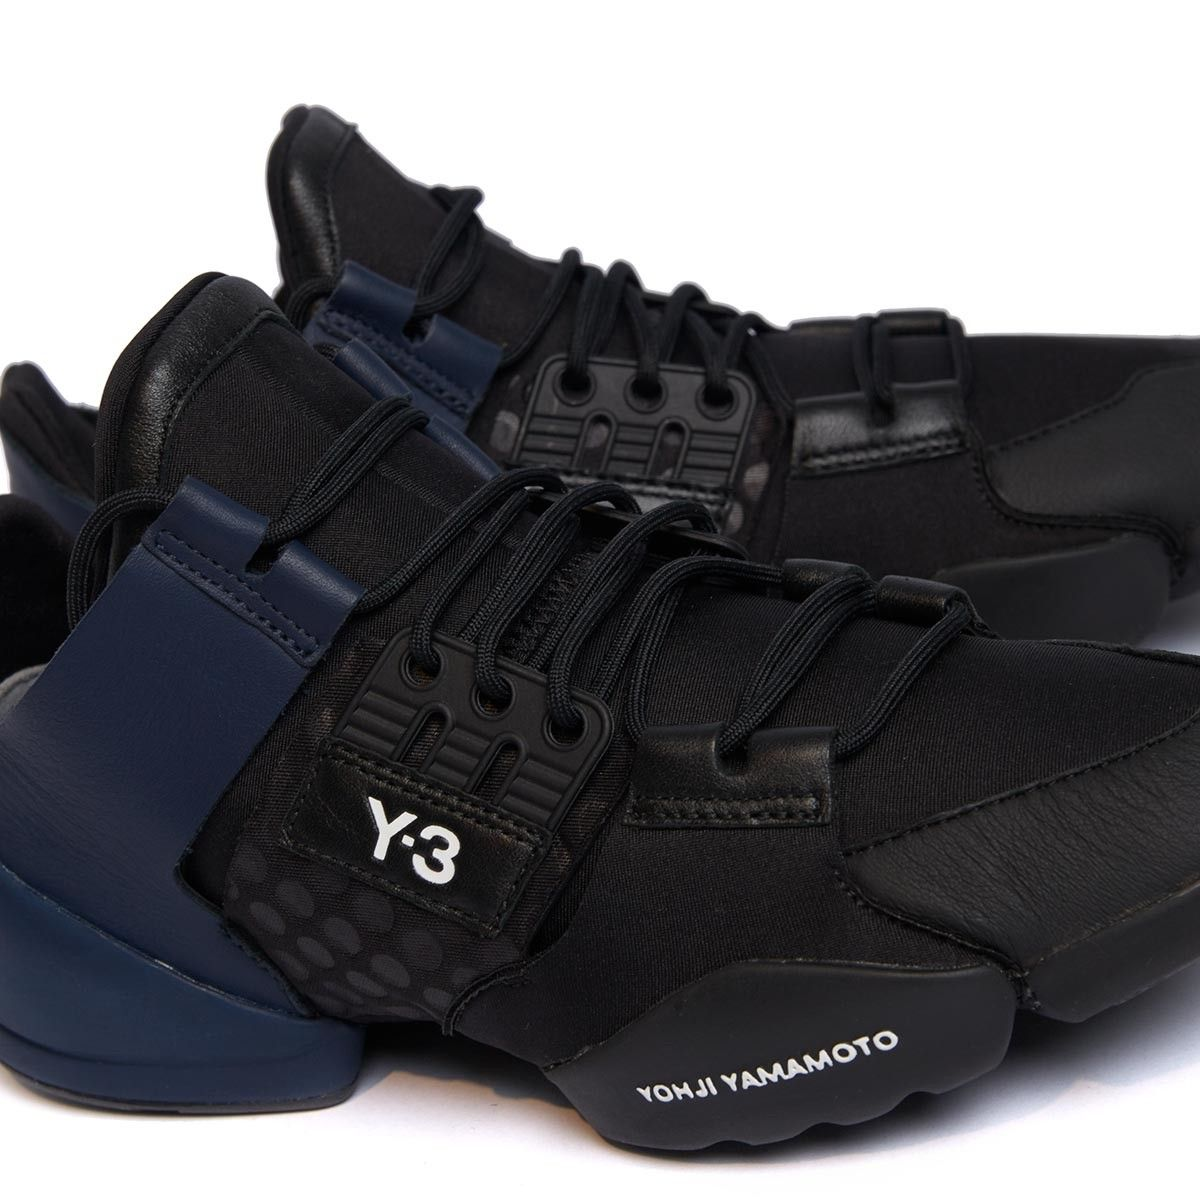 ba48ffee3 Kanja sneakers from the S S2017 Y-3 by Yohji Yamamoto collection in black